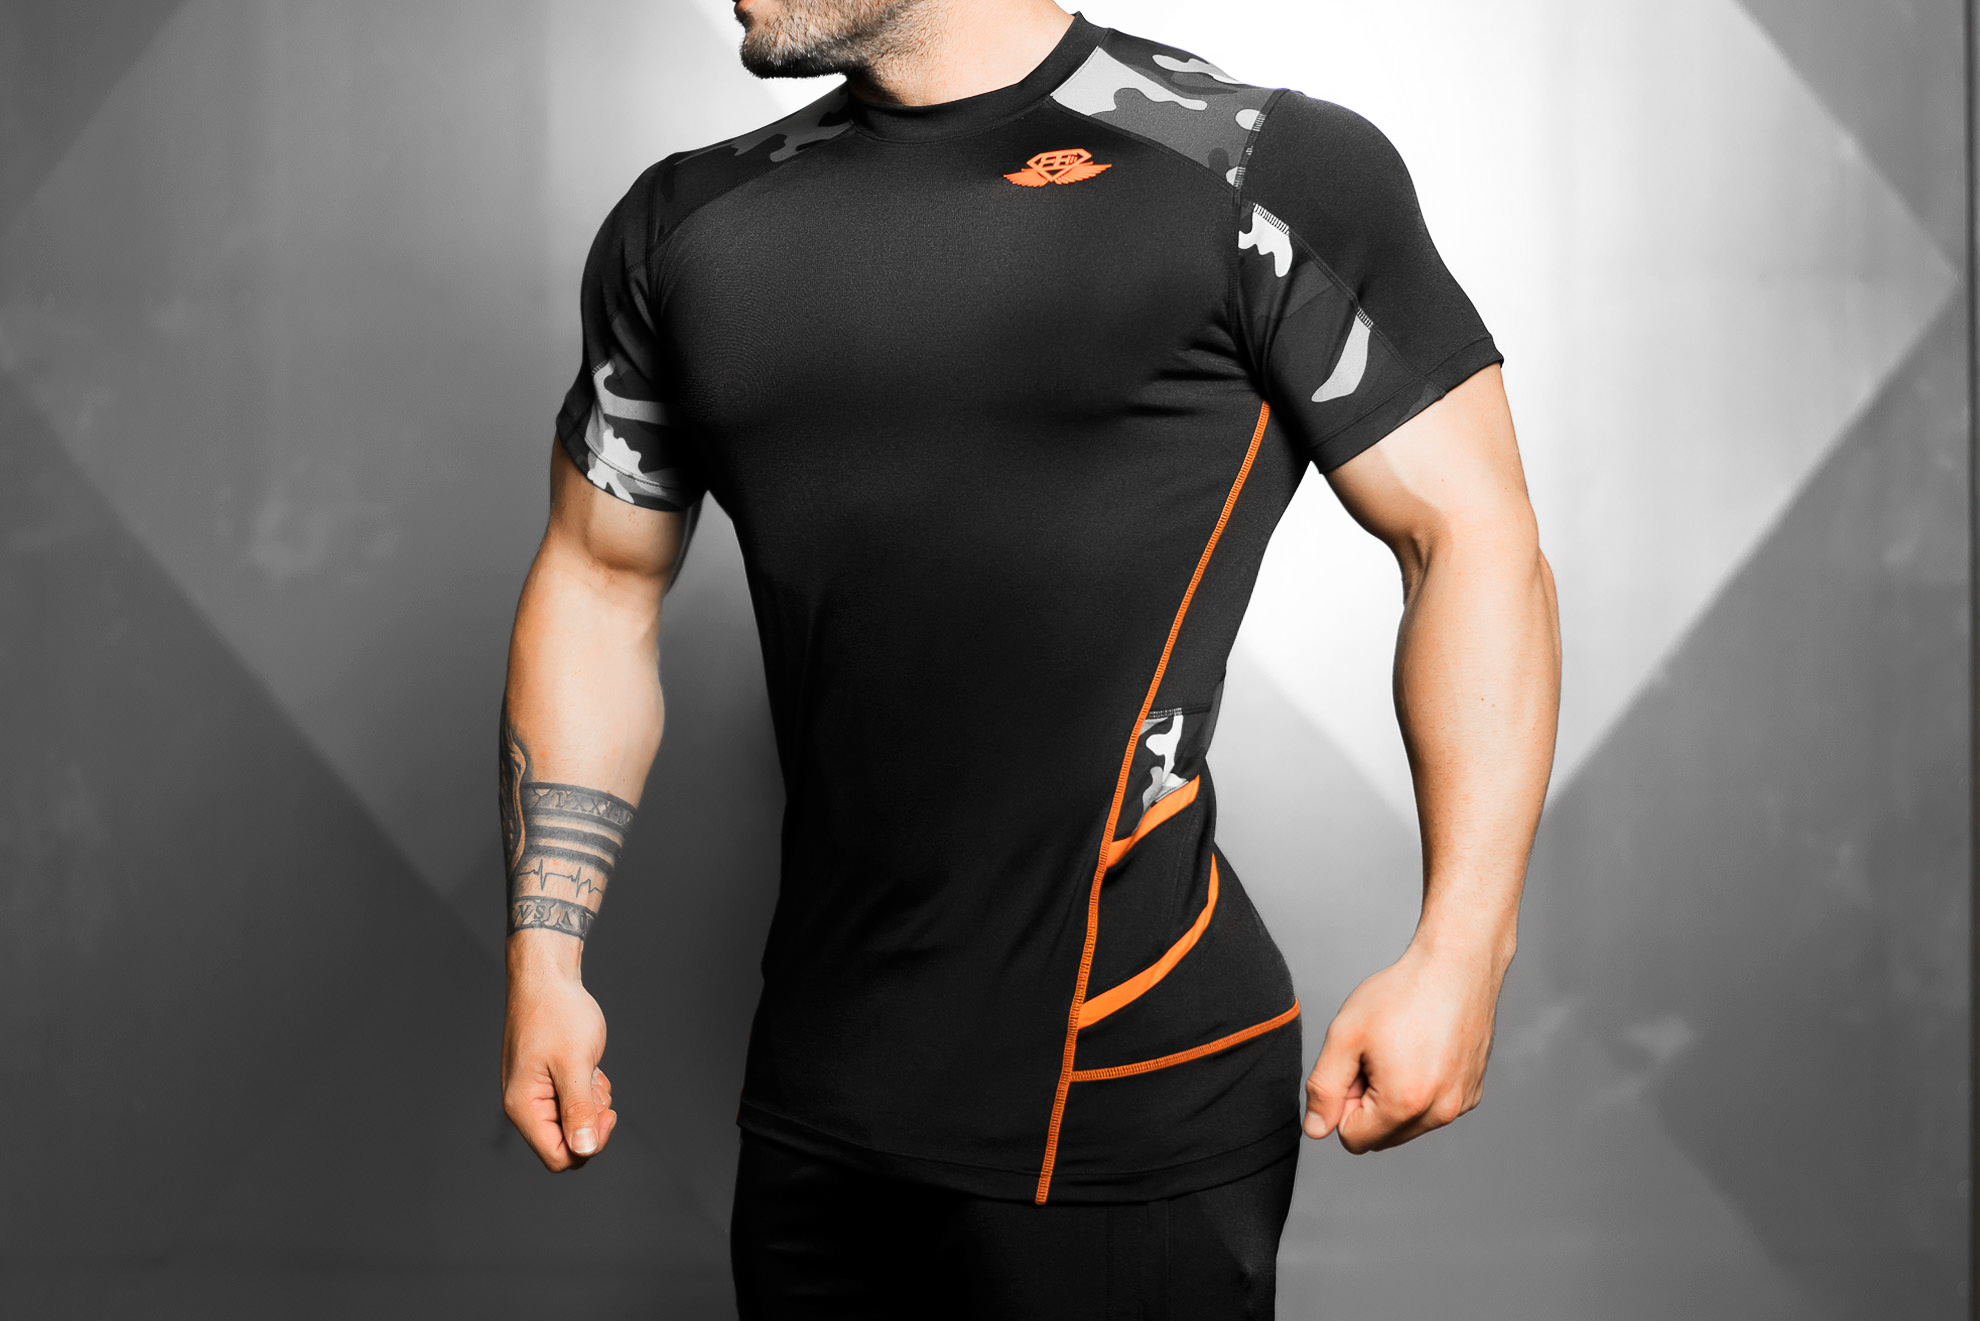 Renzo Performance Shirt - Black & Dutch orange